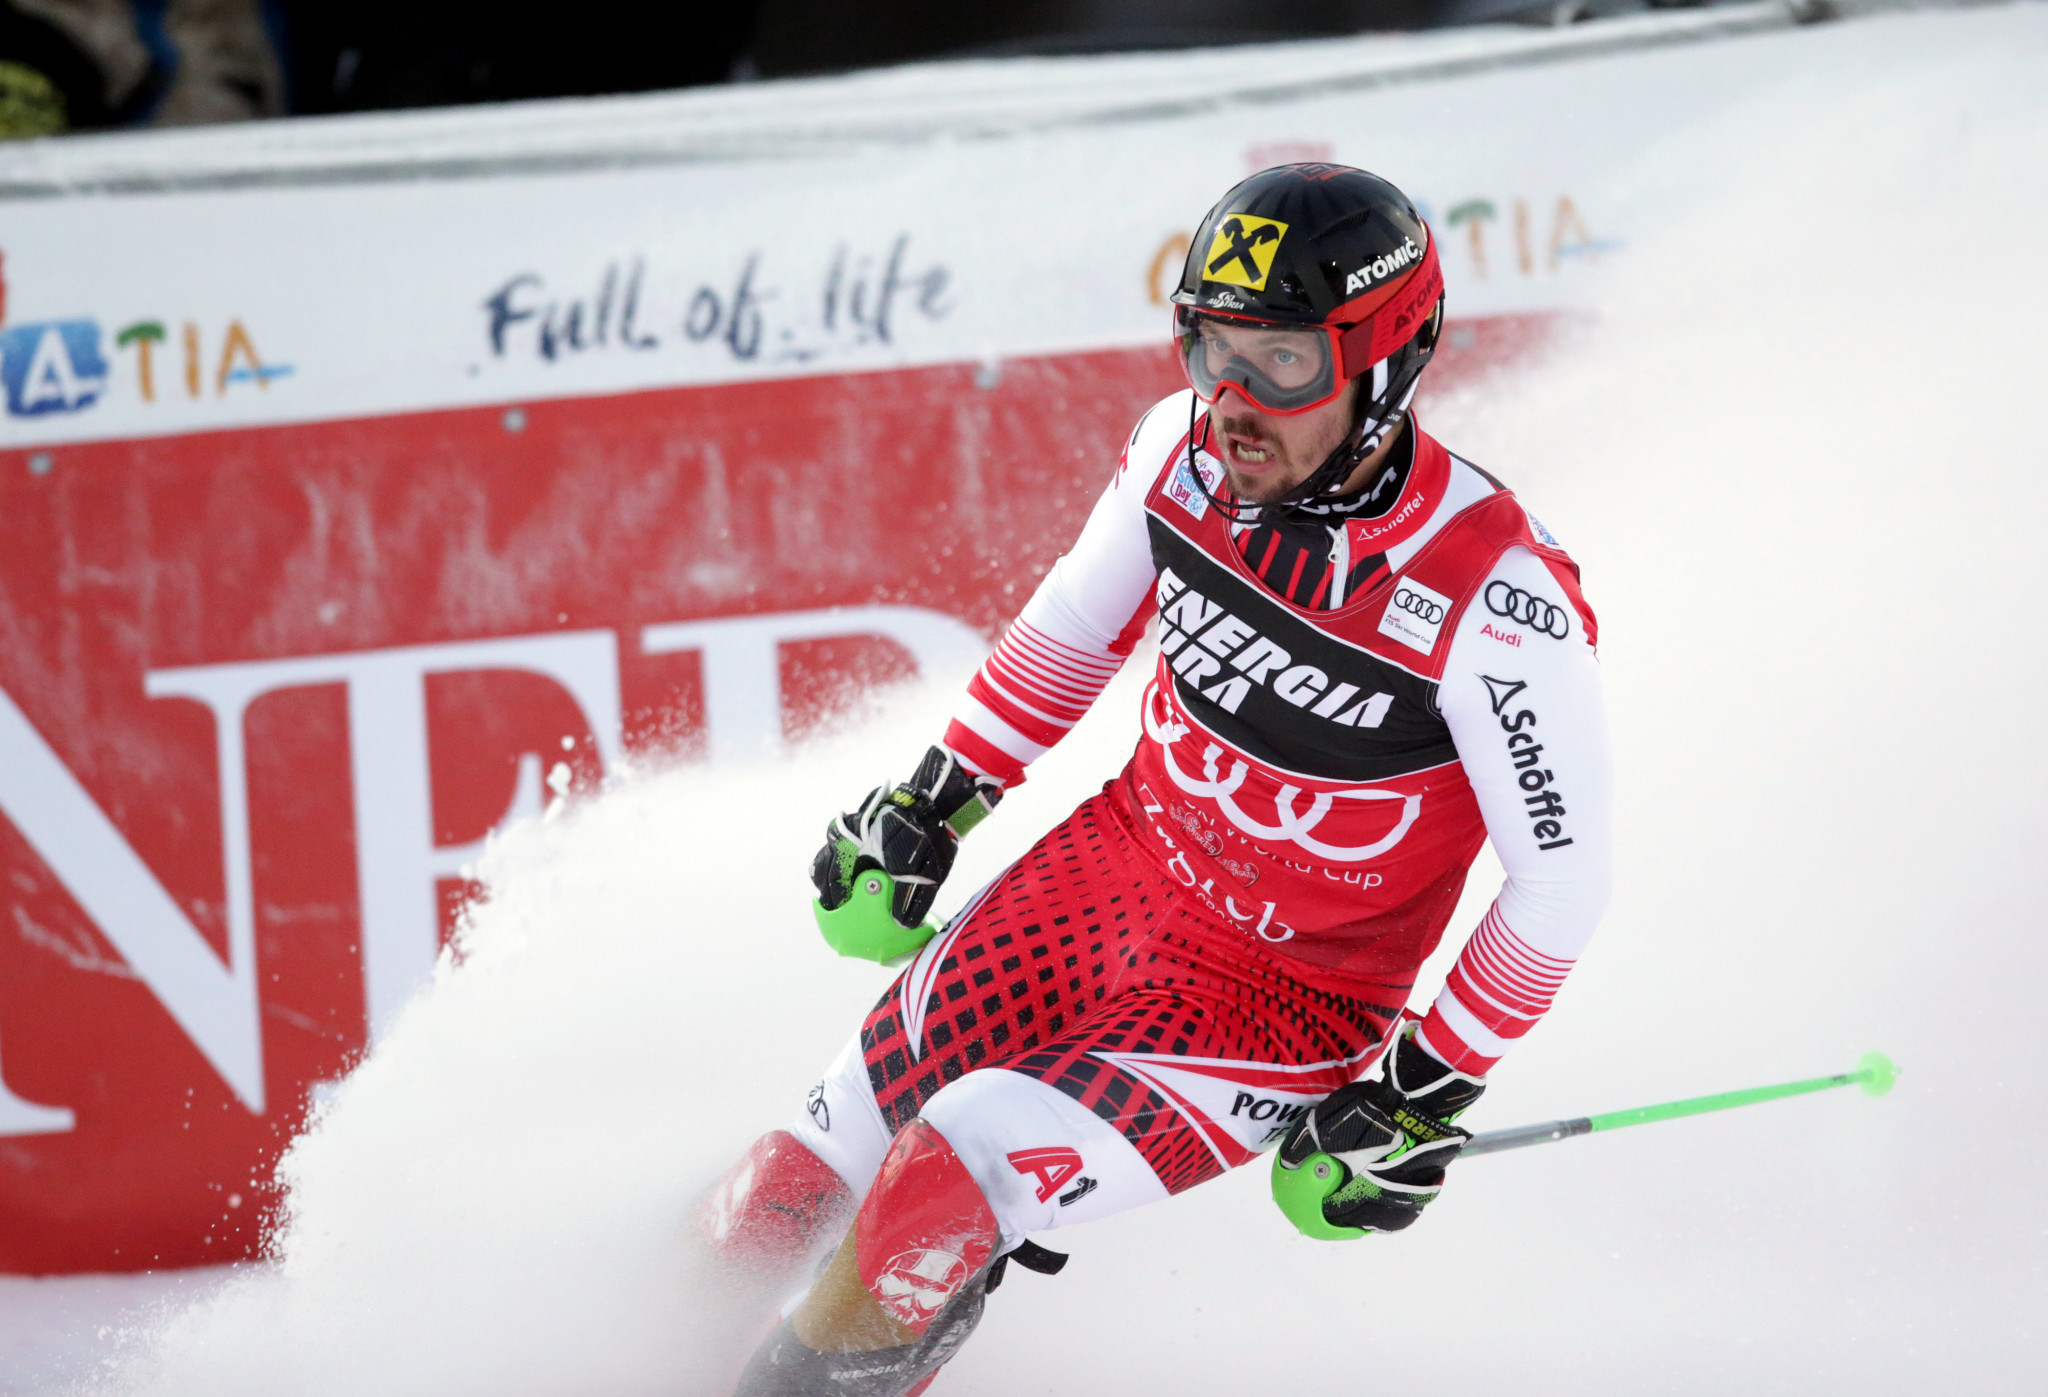 Hirscher out to extend FIS Alpine Skiing World Cup lead in Adelboden